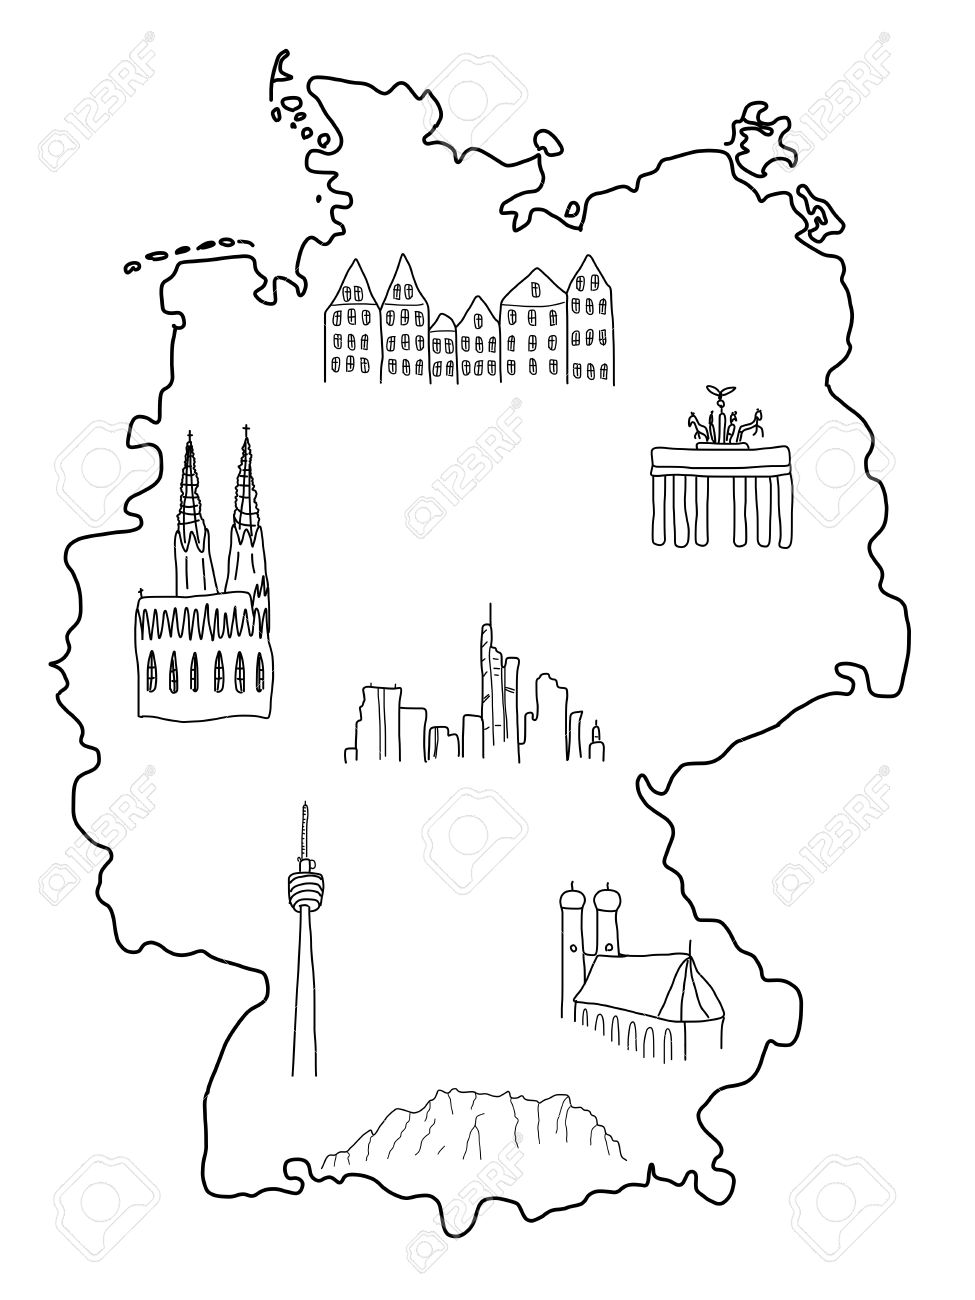 Frankfurt Karte Deutschland.Stock Photo